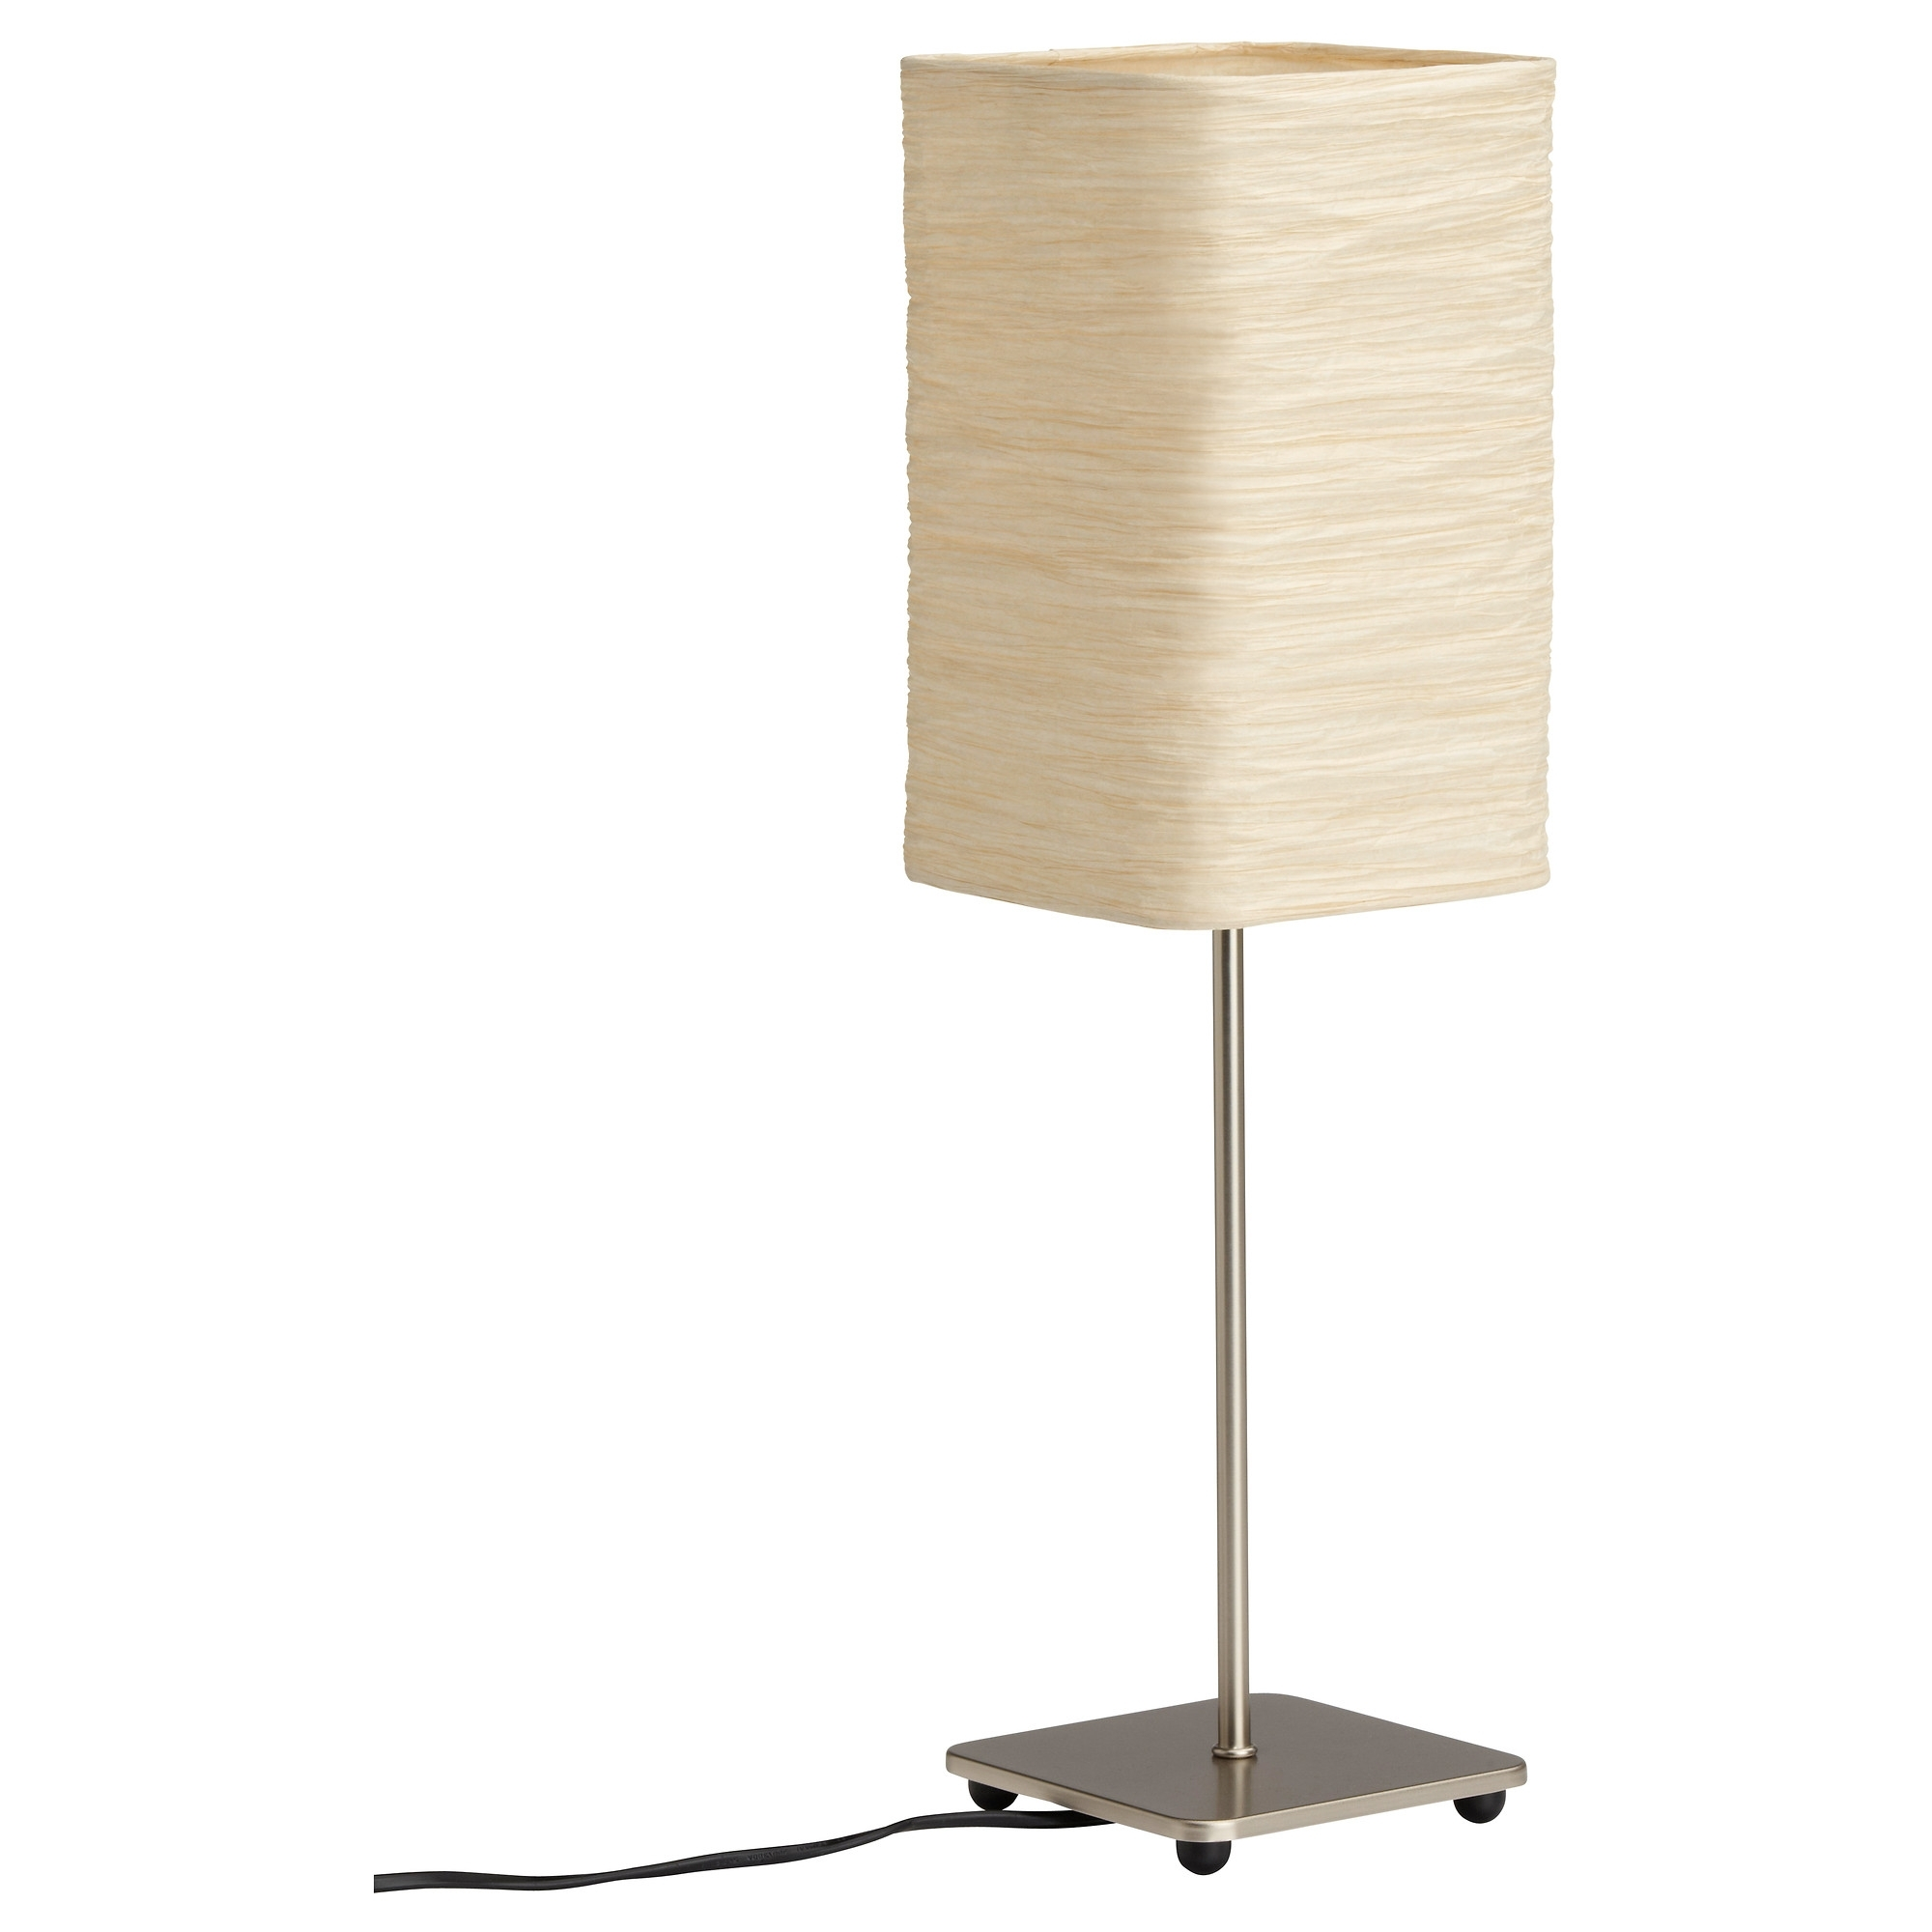 Cordless Table Lamps Ikea ~ Best Inspiration For Table Lamp Intended For Famous Living Room Table Lamps At Ikea (View 10 of 20)